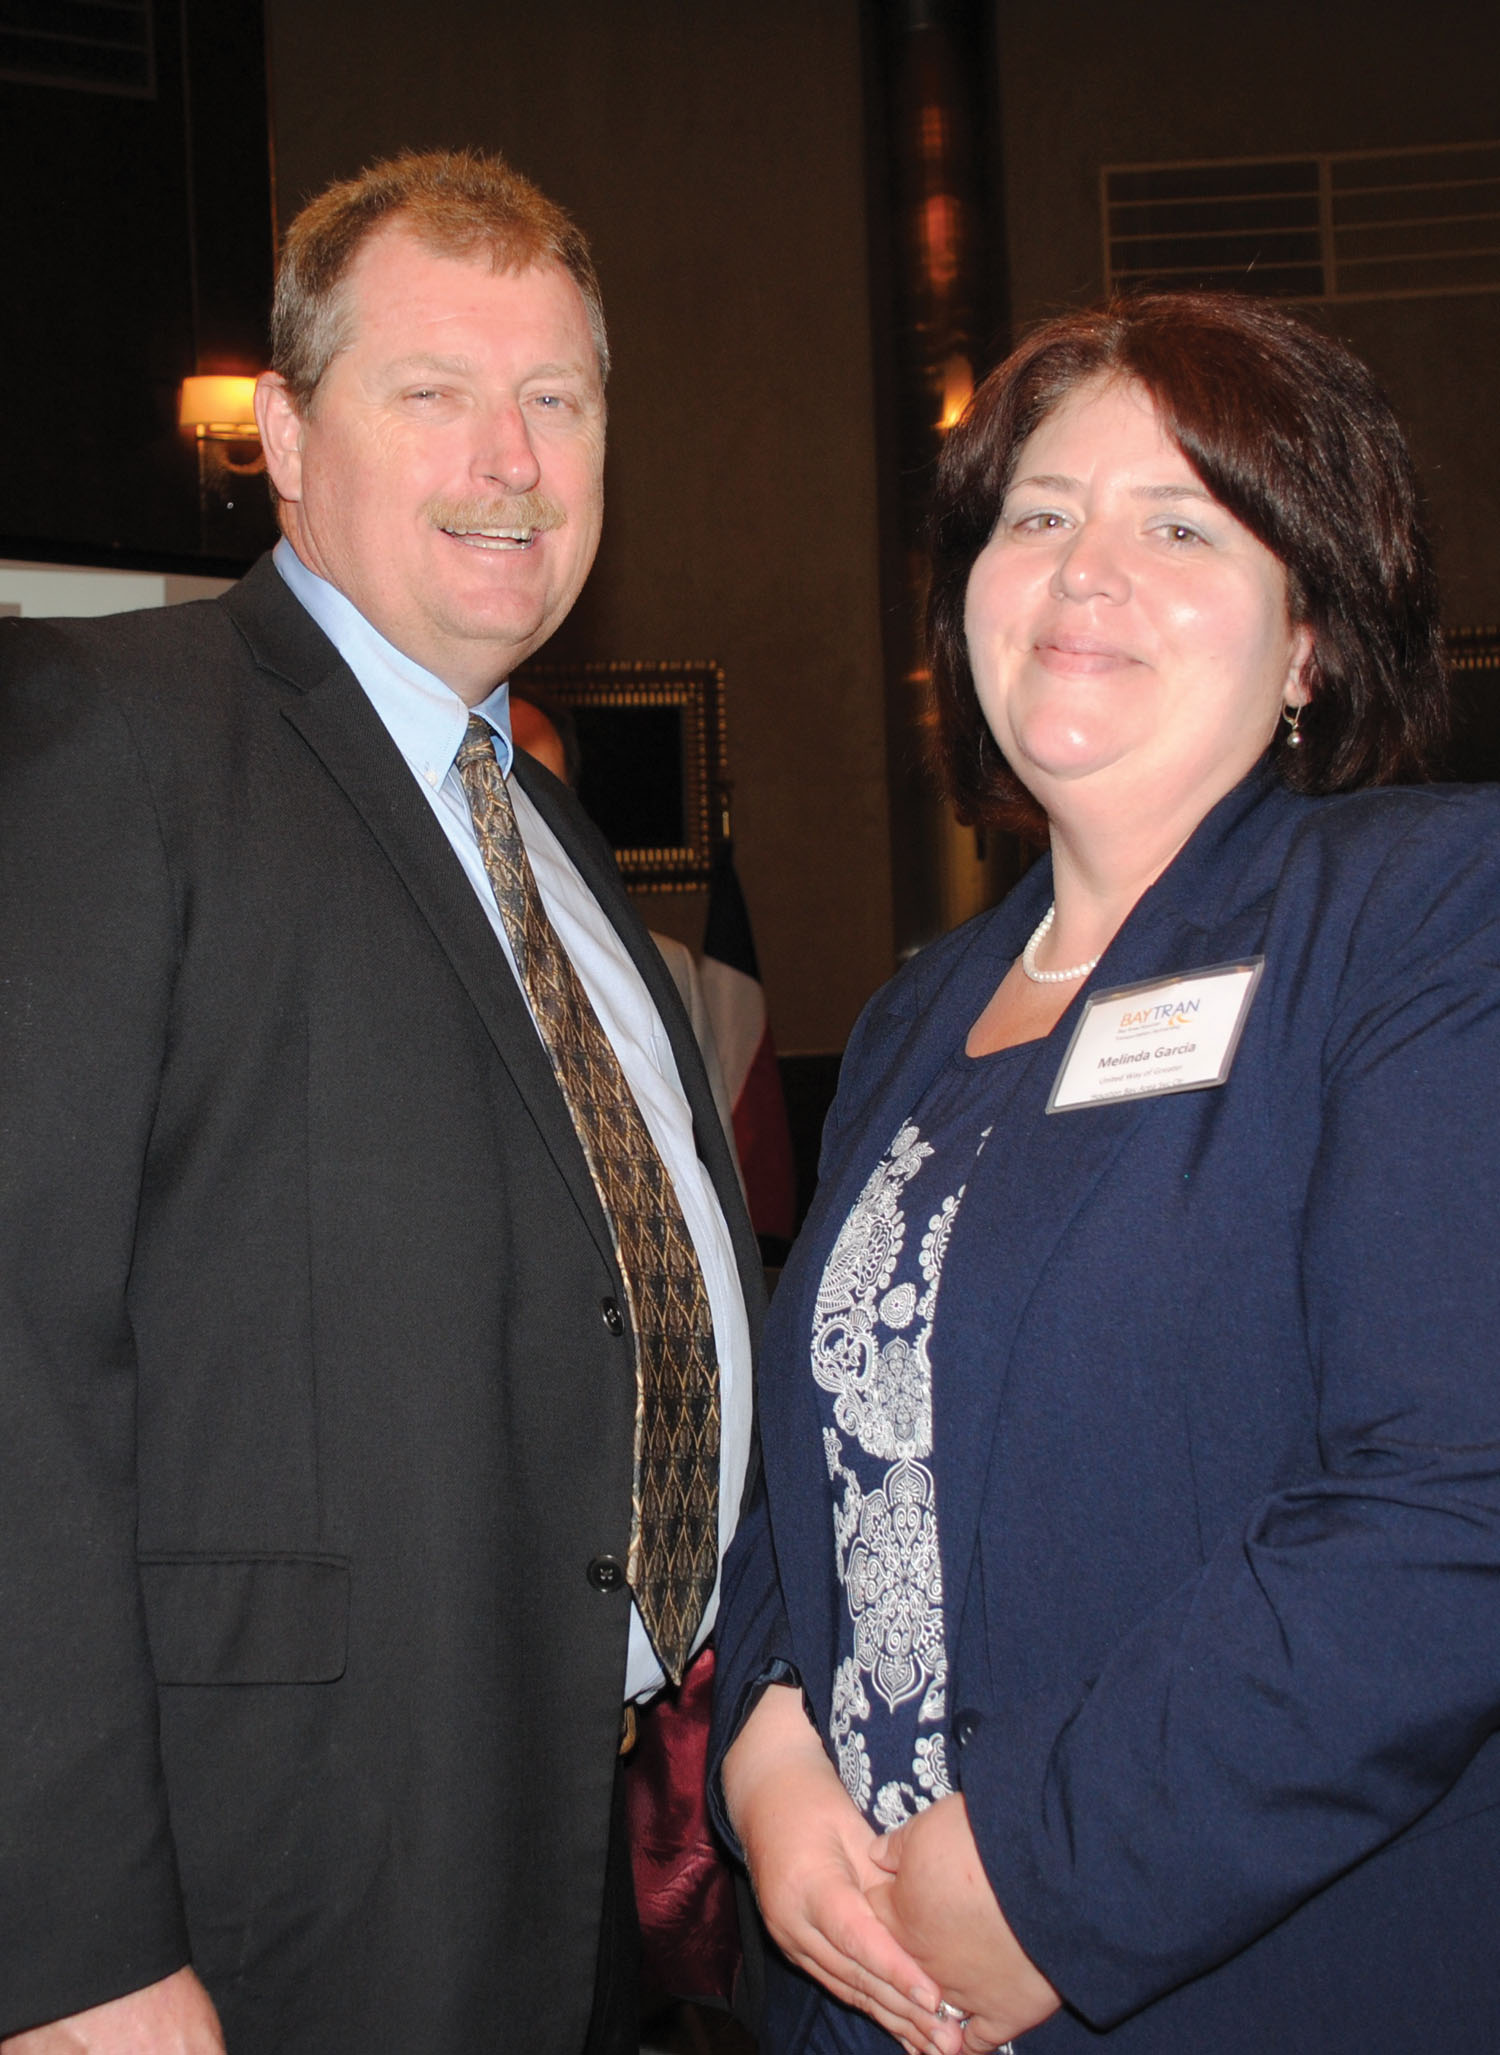 Galveston County Commissioner Ken Clark and United Way Executive Director Melinda Garcia,